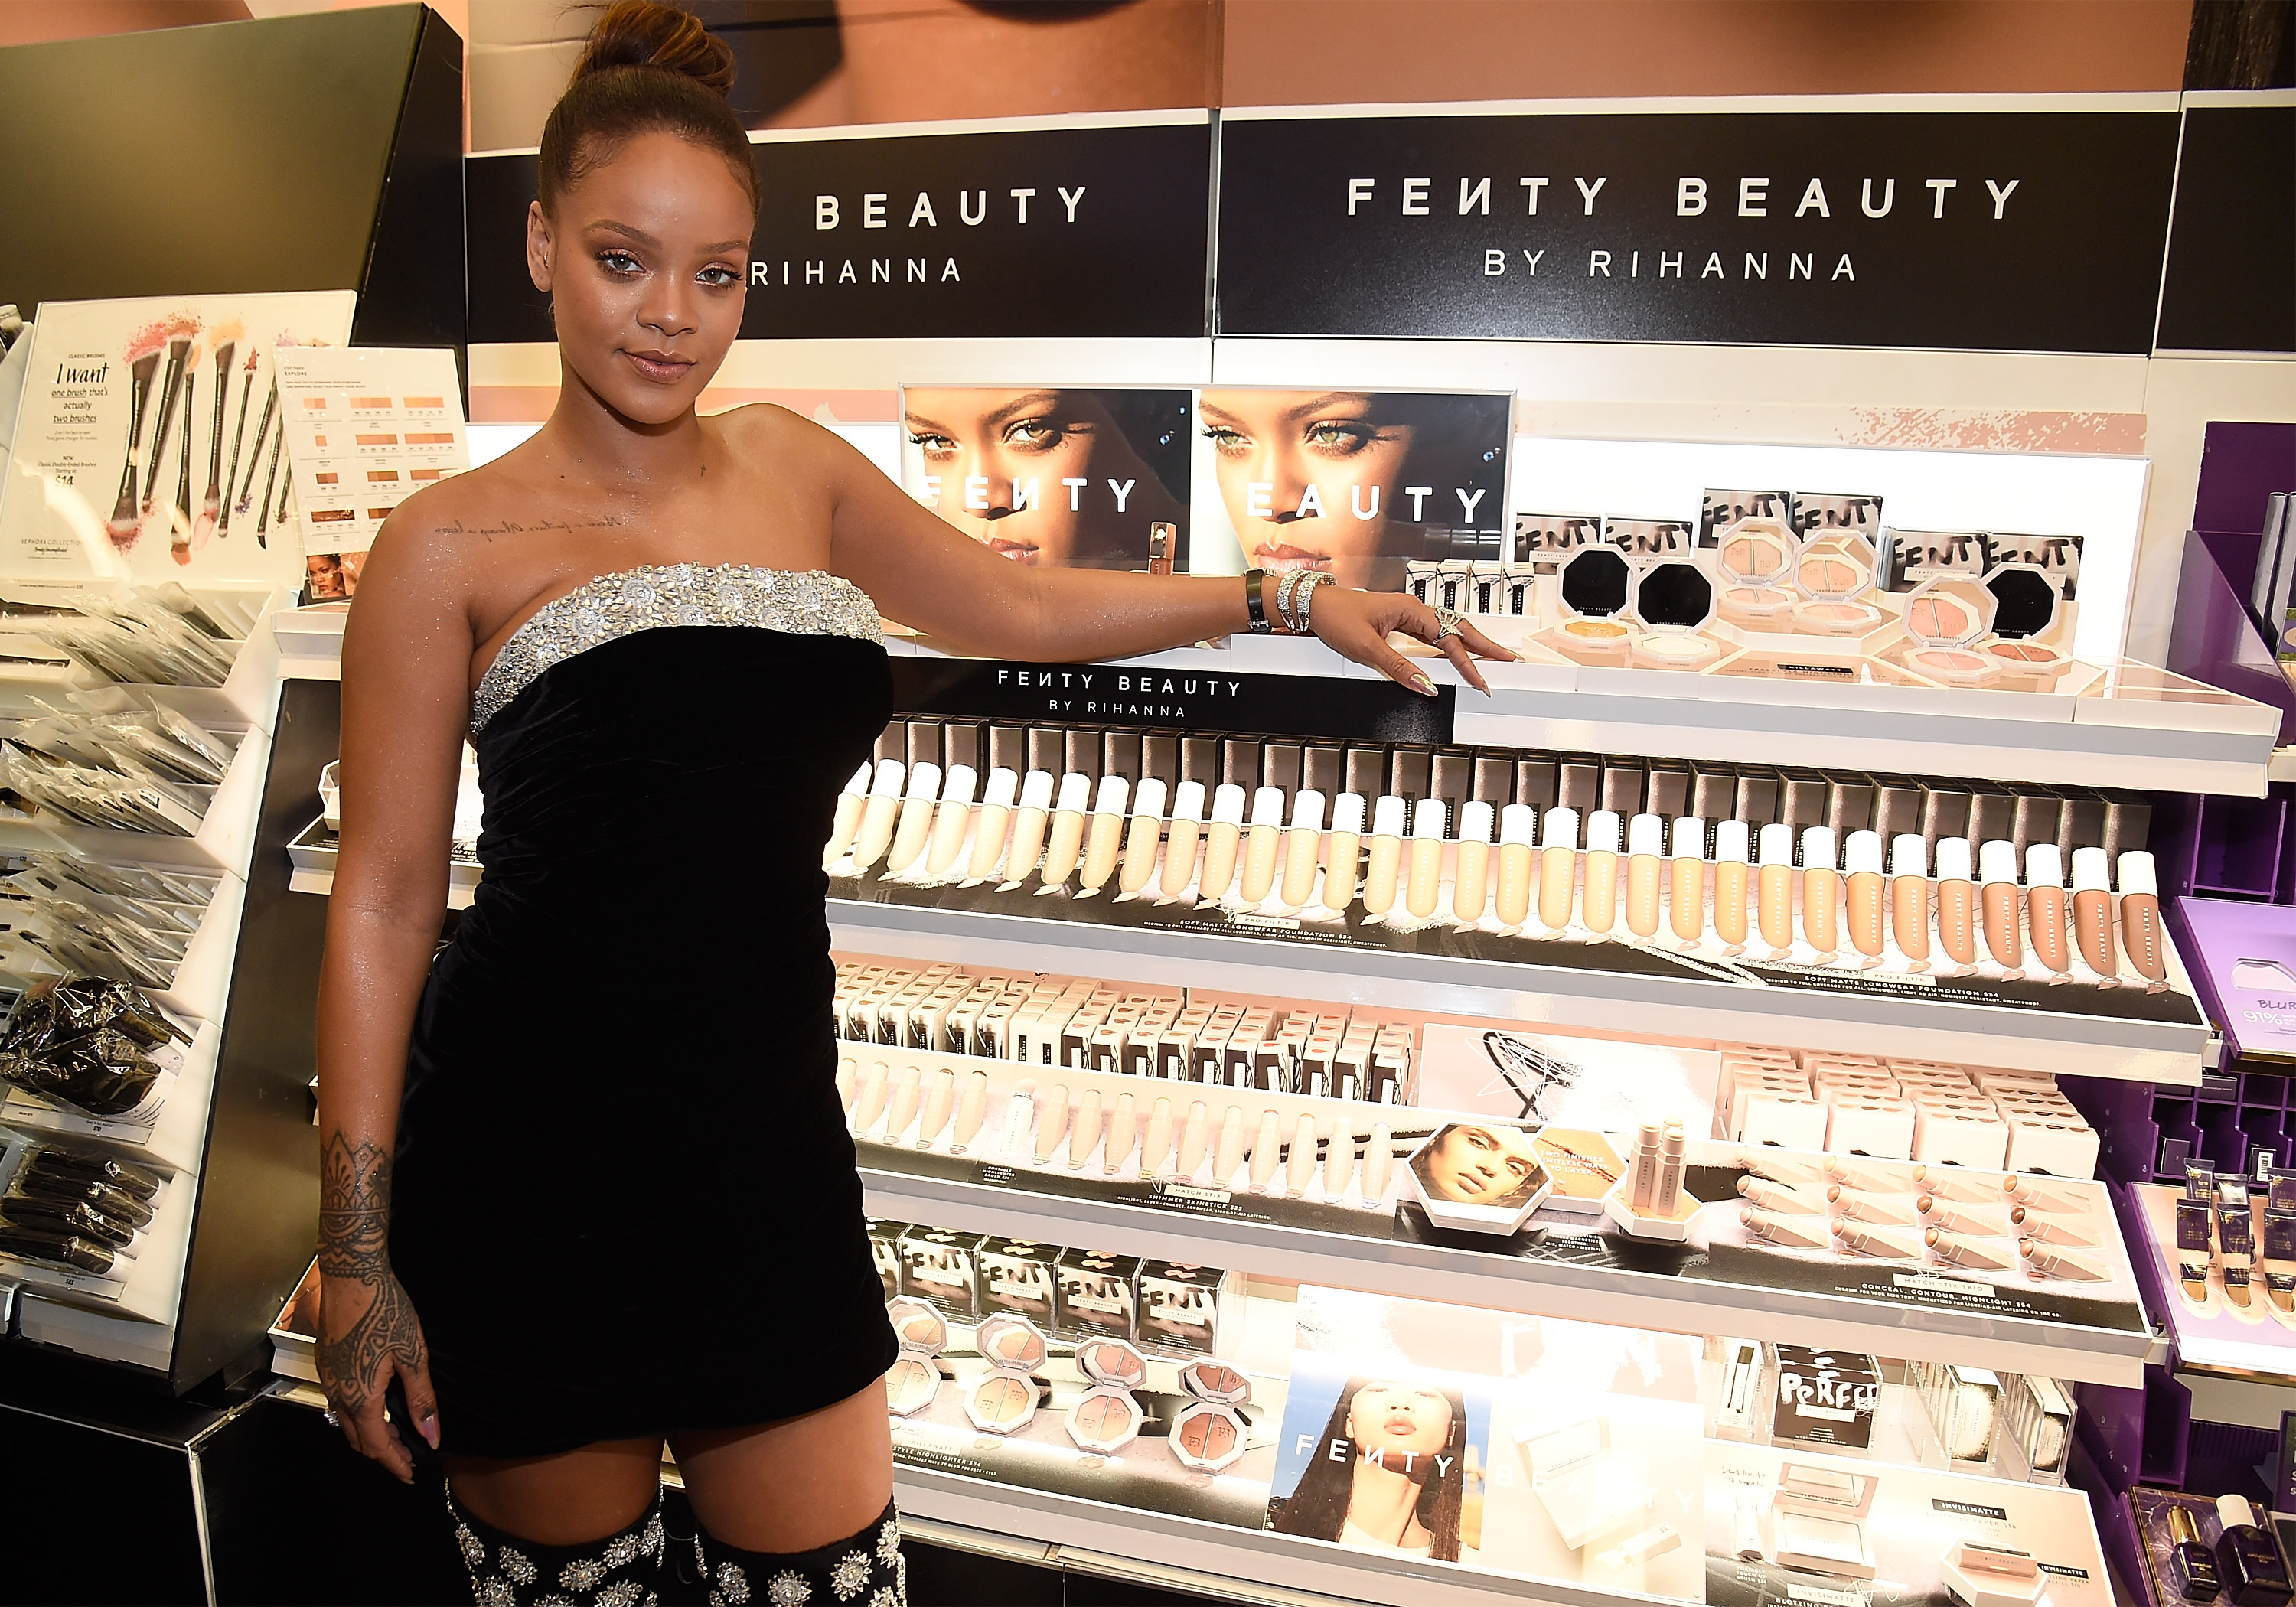 fenty beauty the cheat sheet